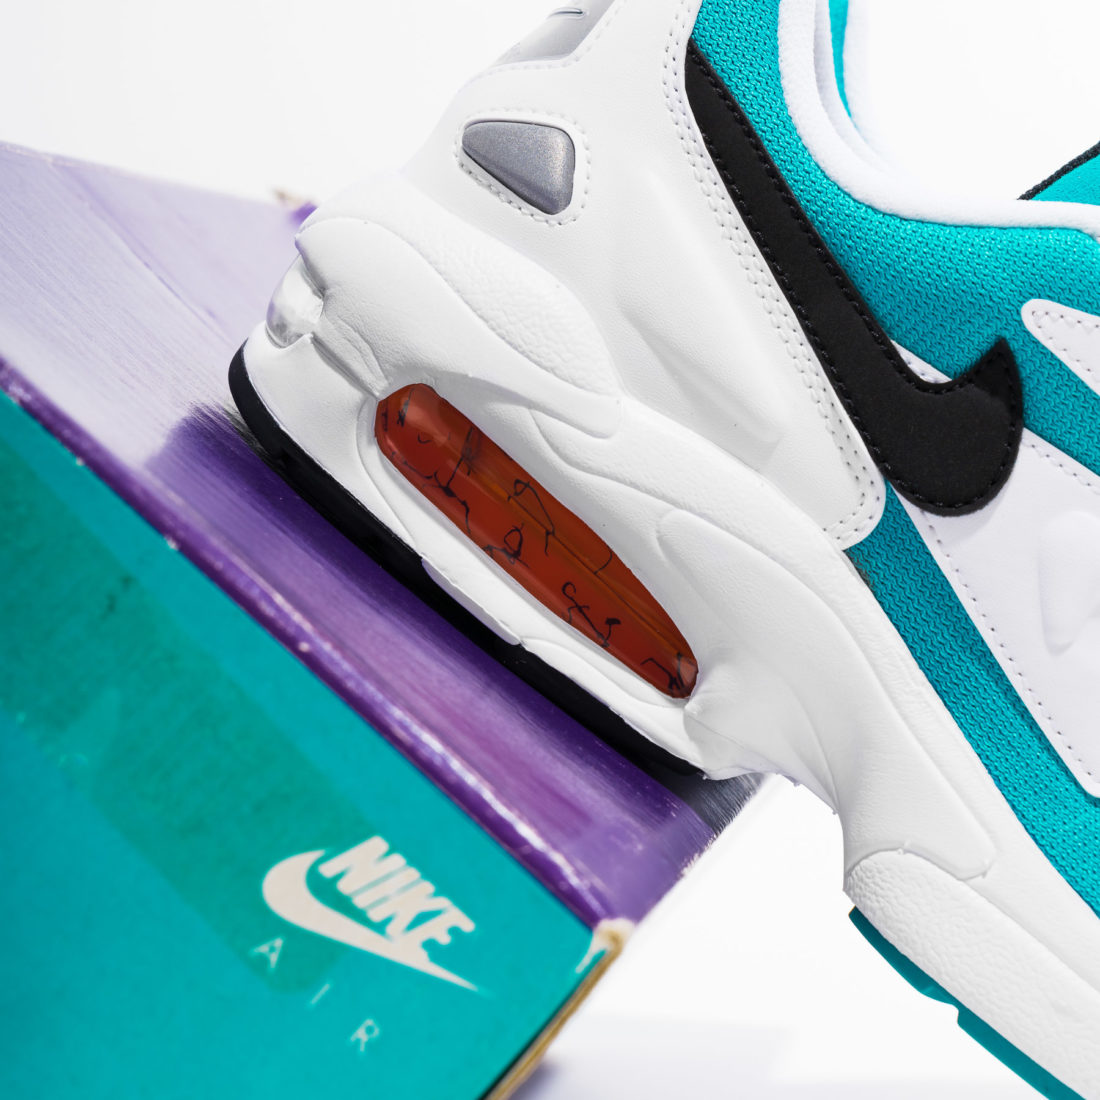 Nike Air Max 90 Re released in its Original Colorway for